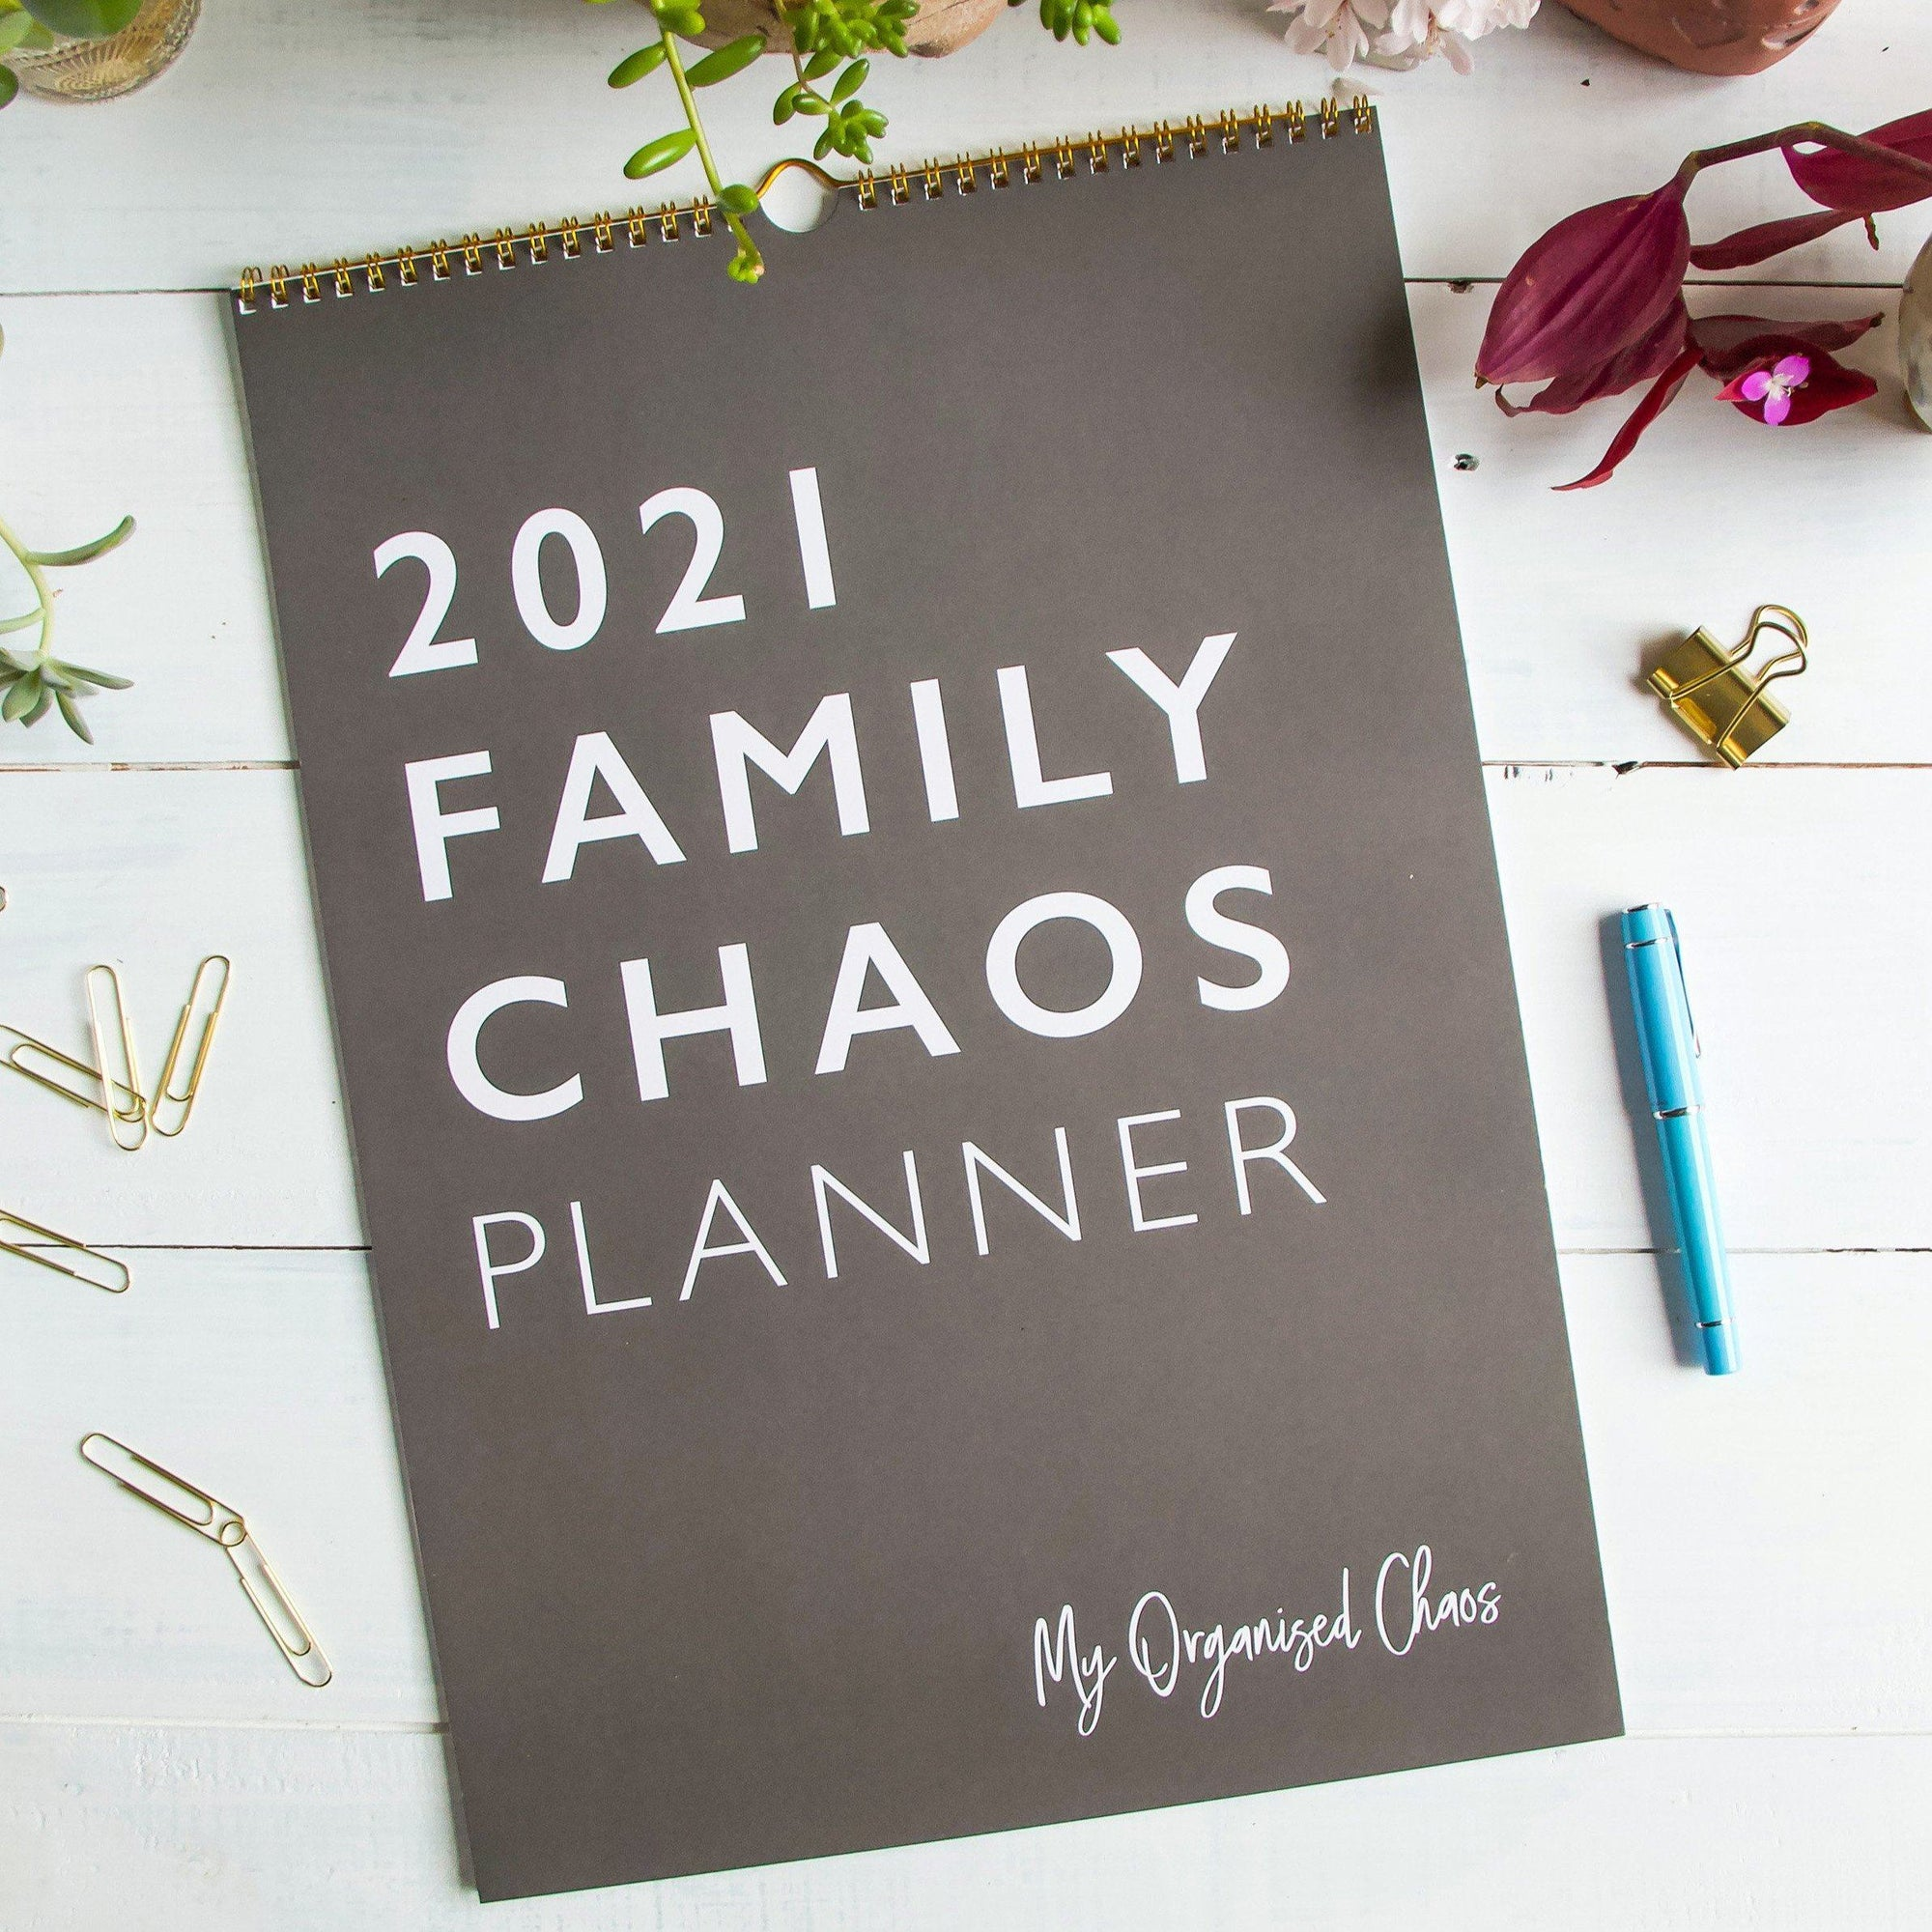 2021 Family Chaos Planner